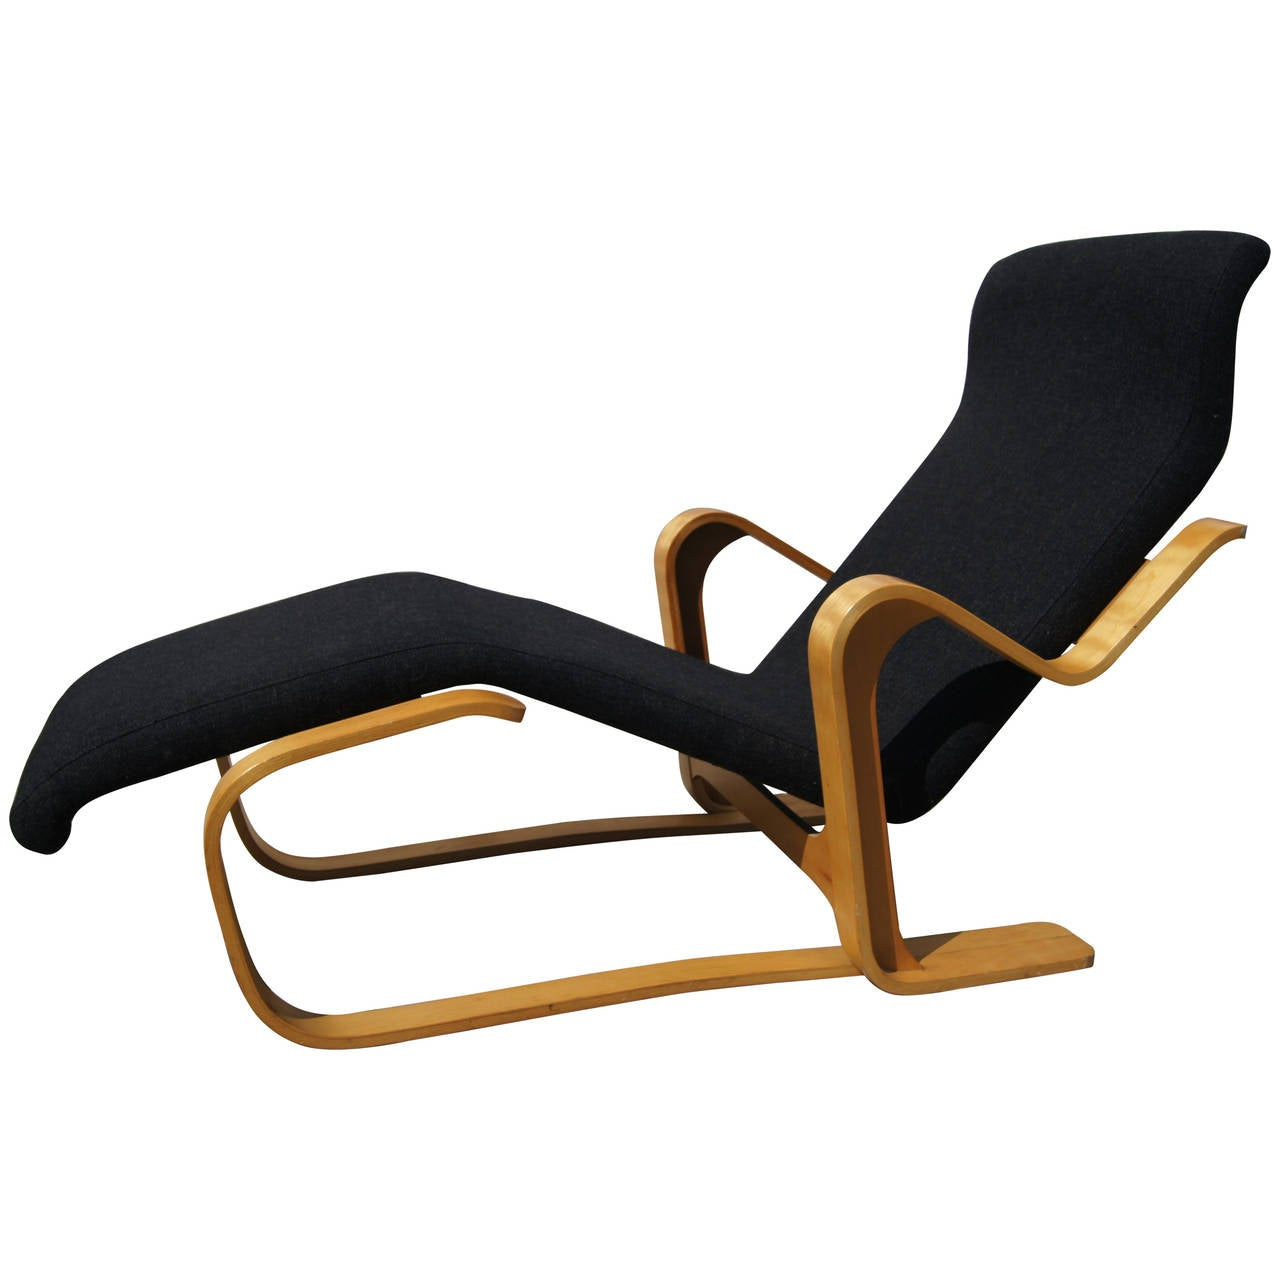 chaise longue by marcel breuer for gavina for sale at 1stdibs